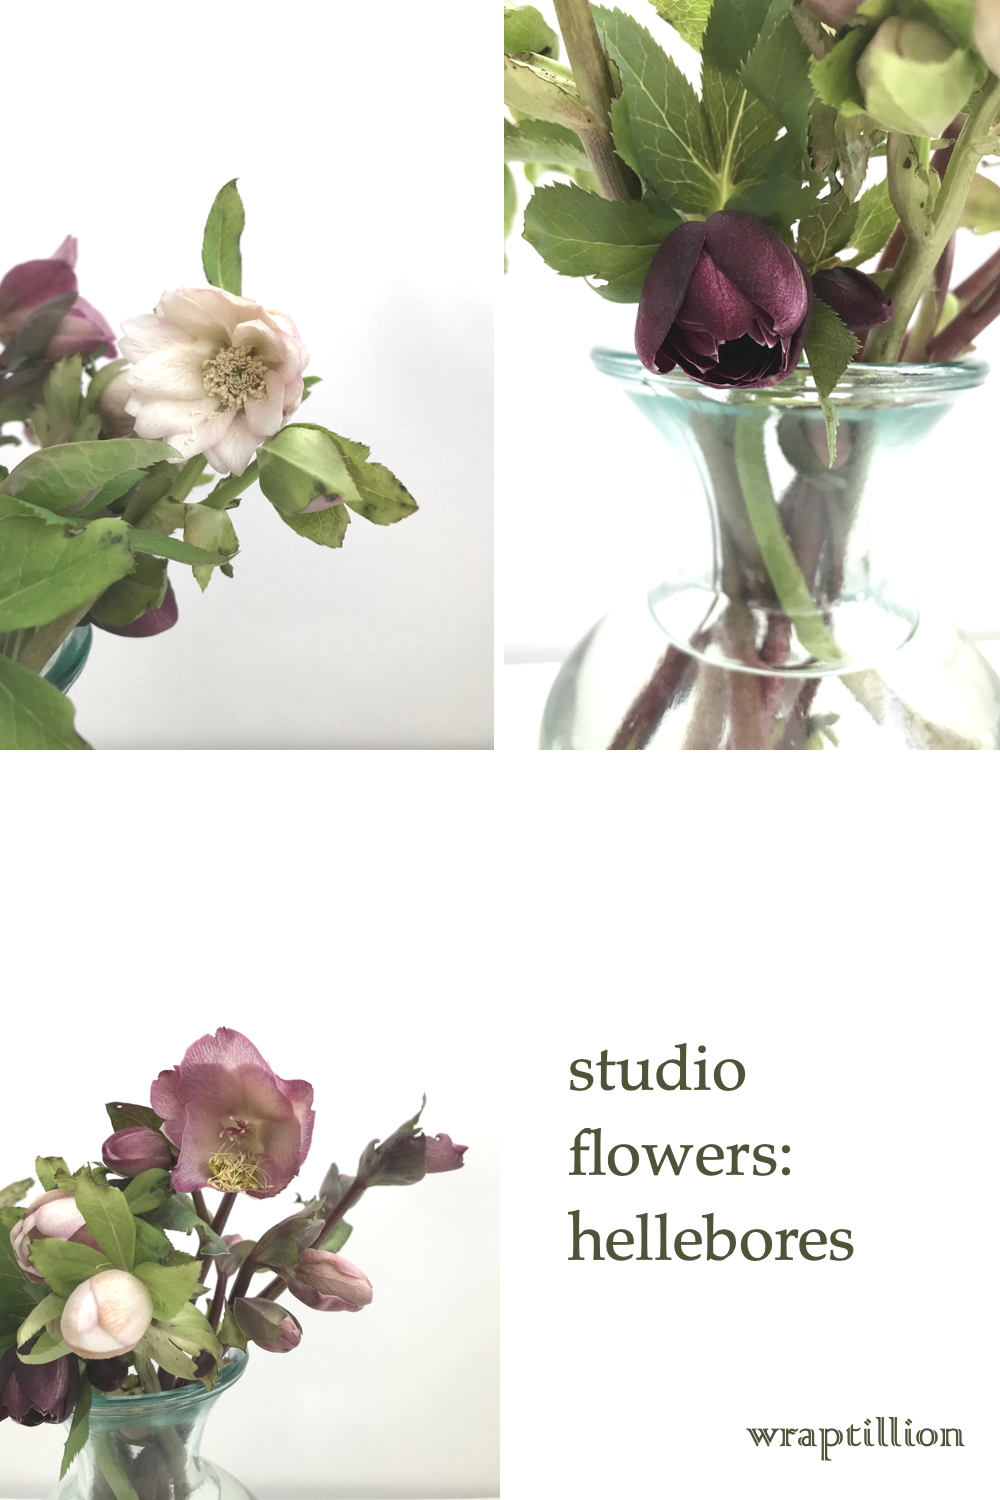 collage of three photos of cut pink and plum hellebores in a glass vase; text on image reads: studio flowers: hellebores, wraptillion.